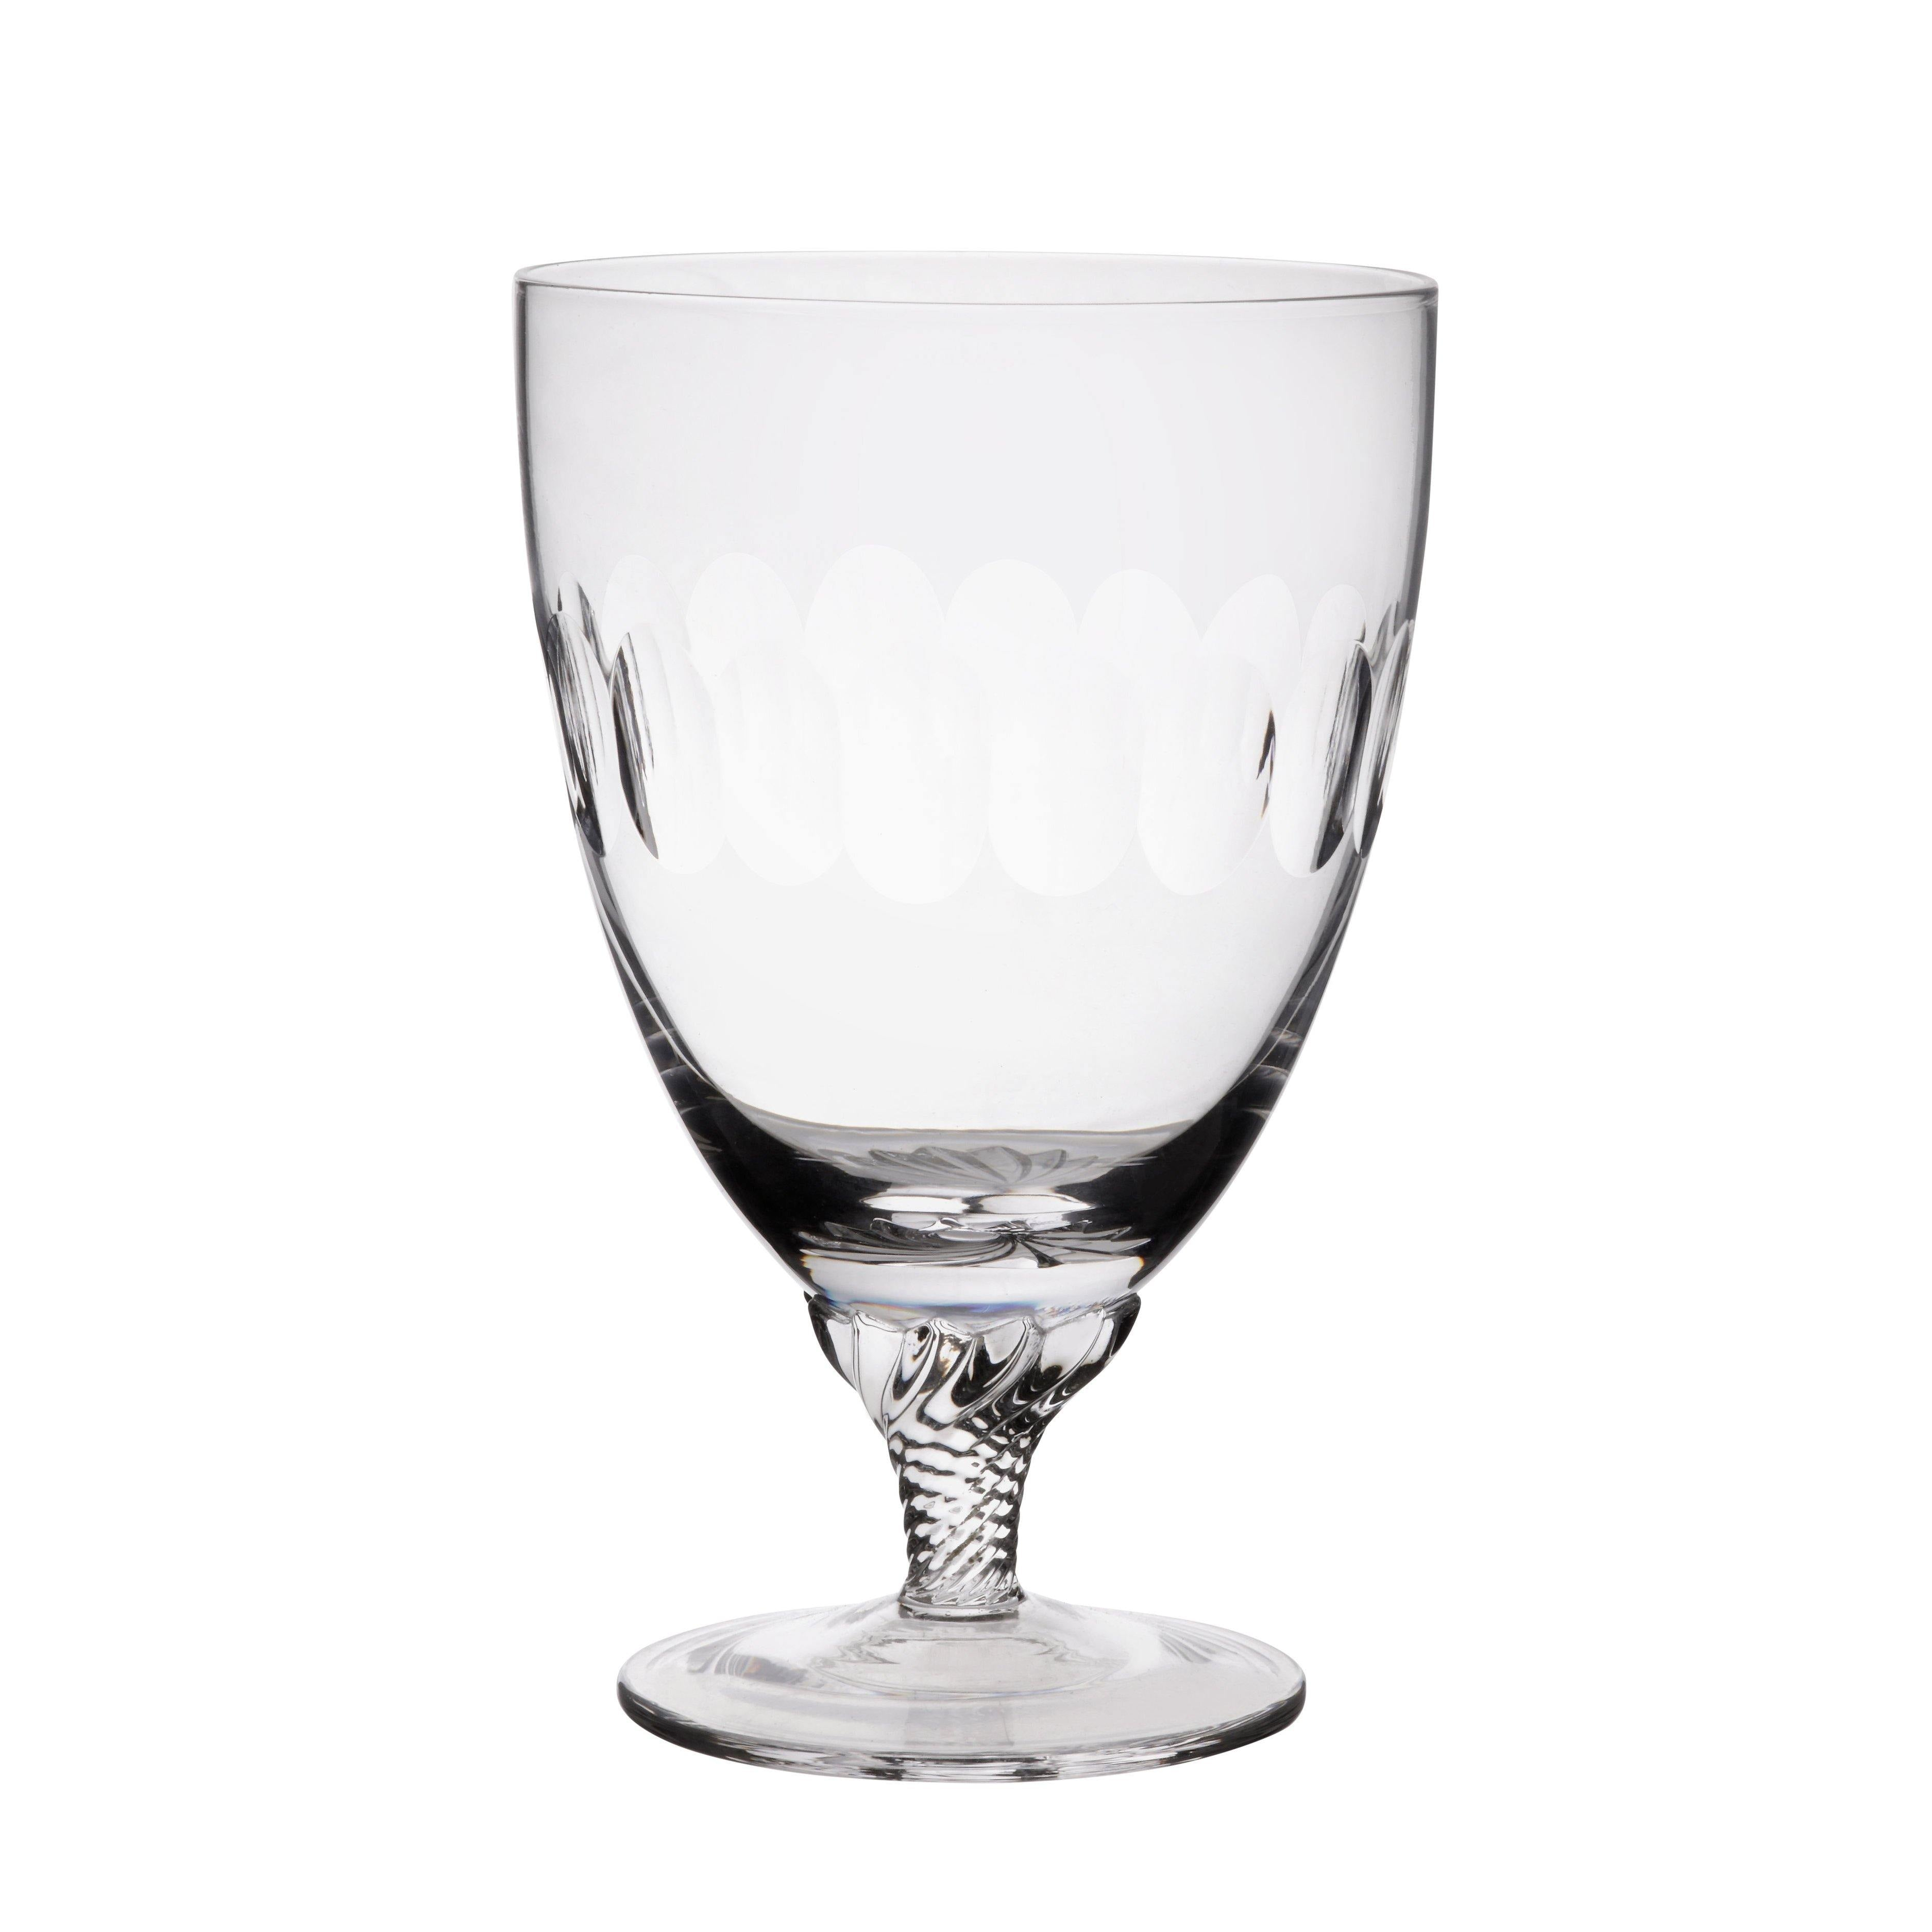 Bistro Glasses with Lens  - Set of 6